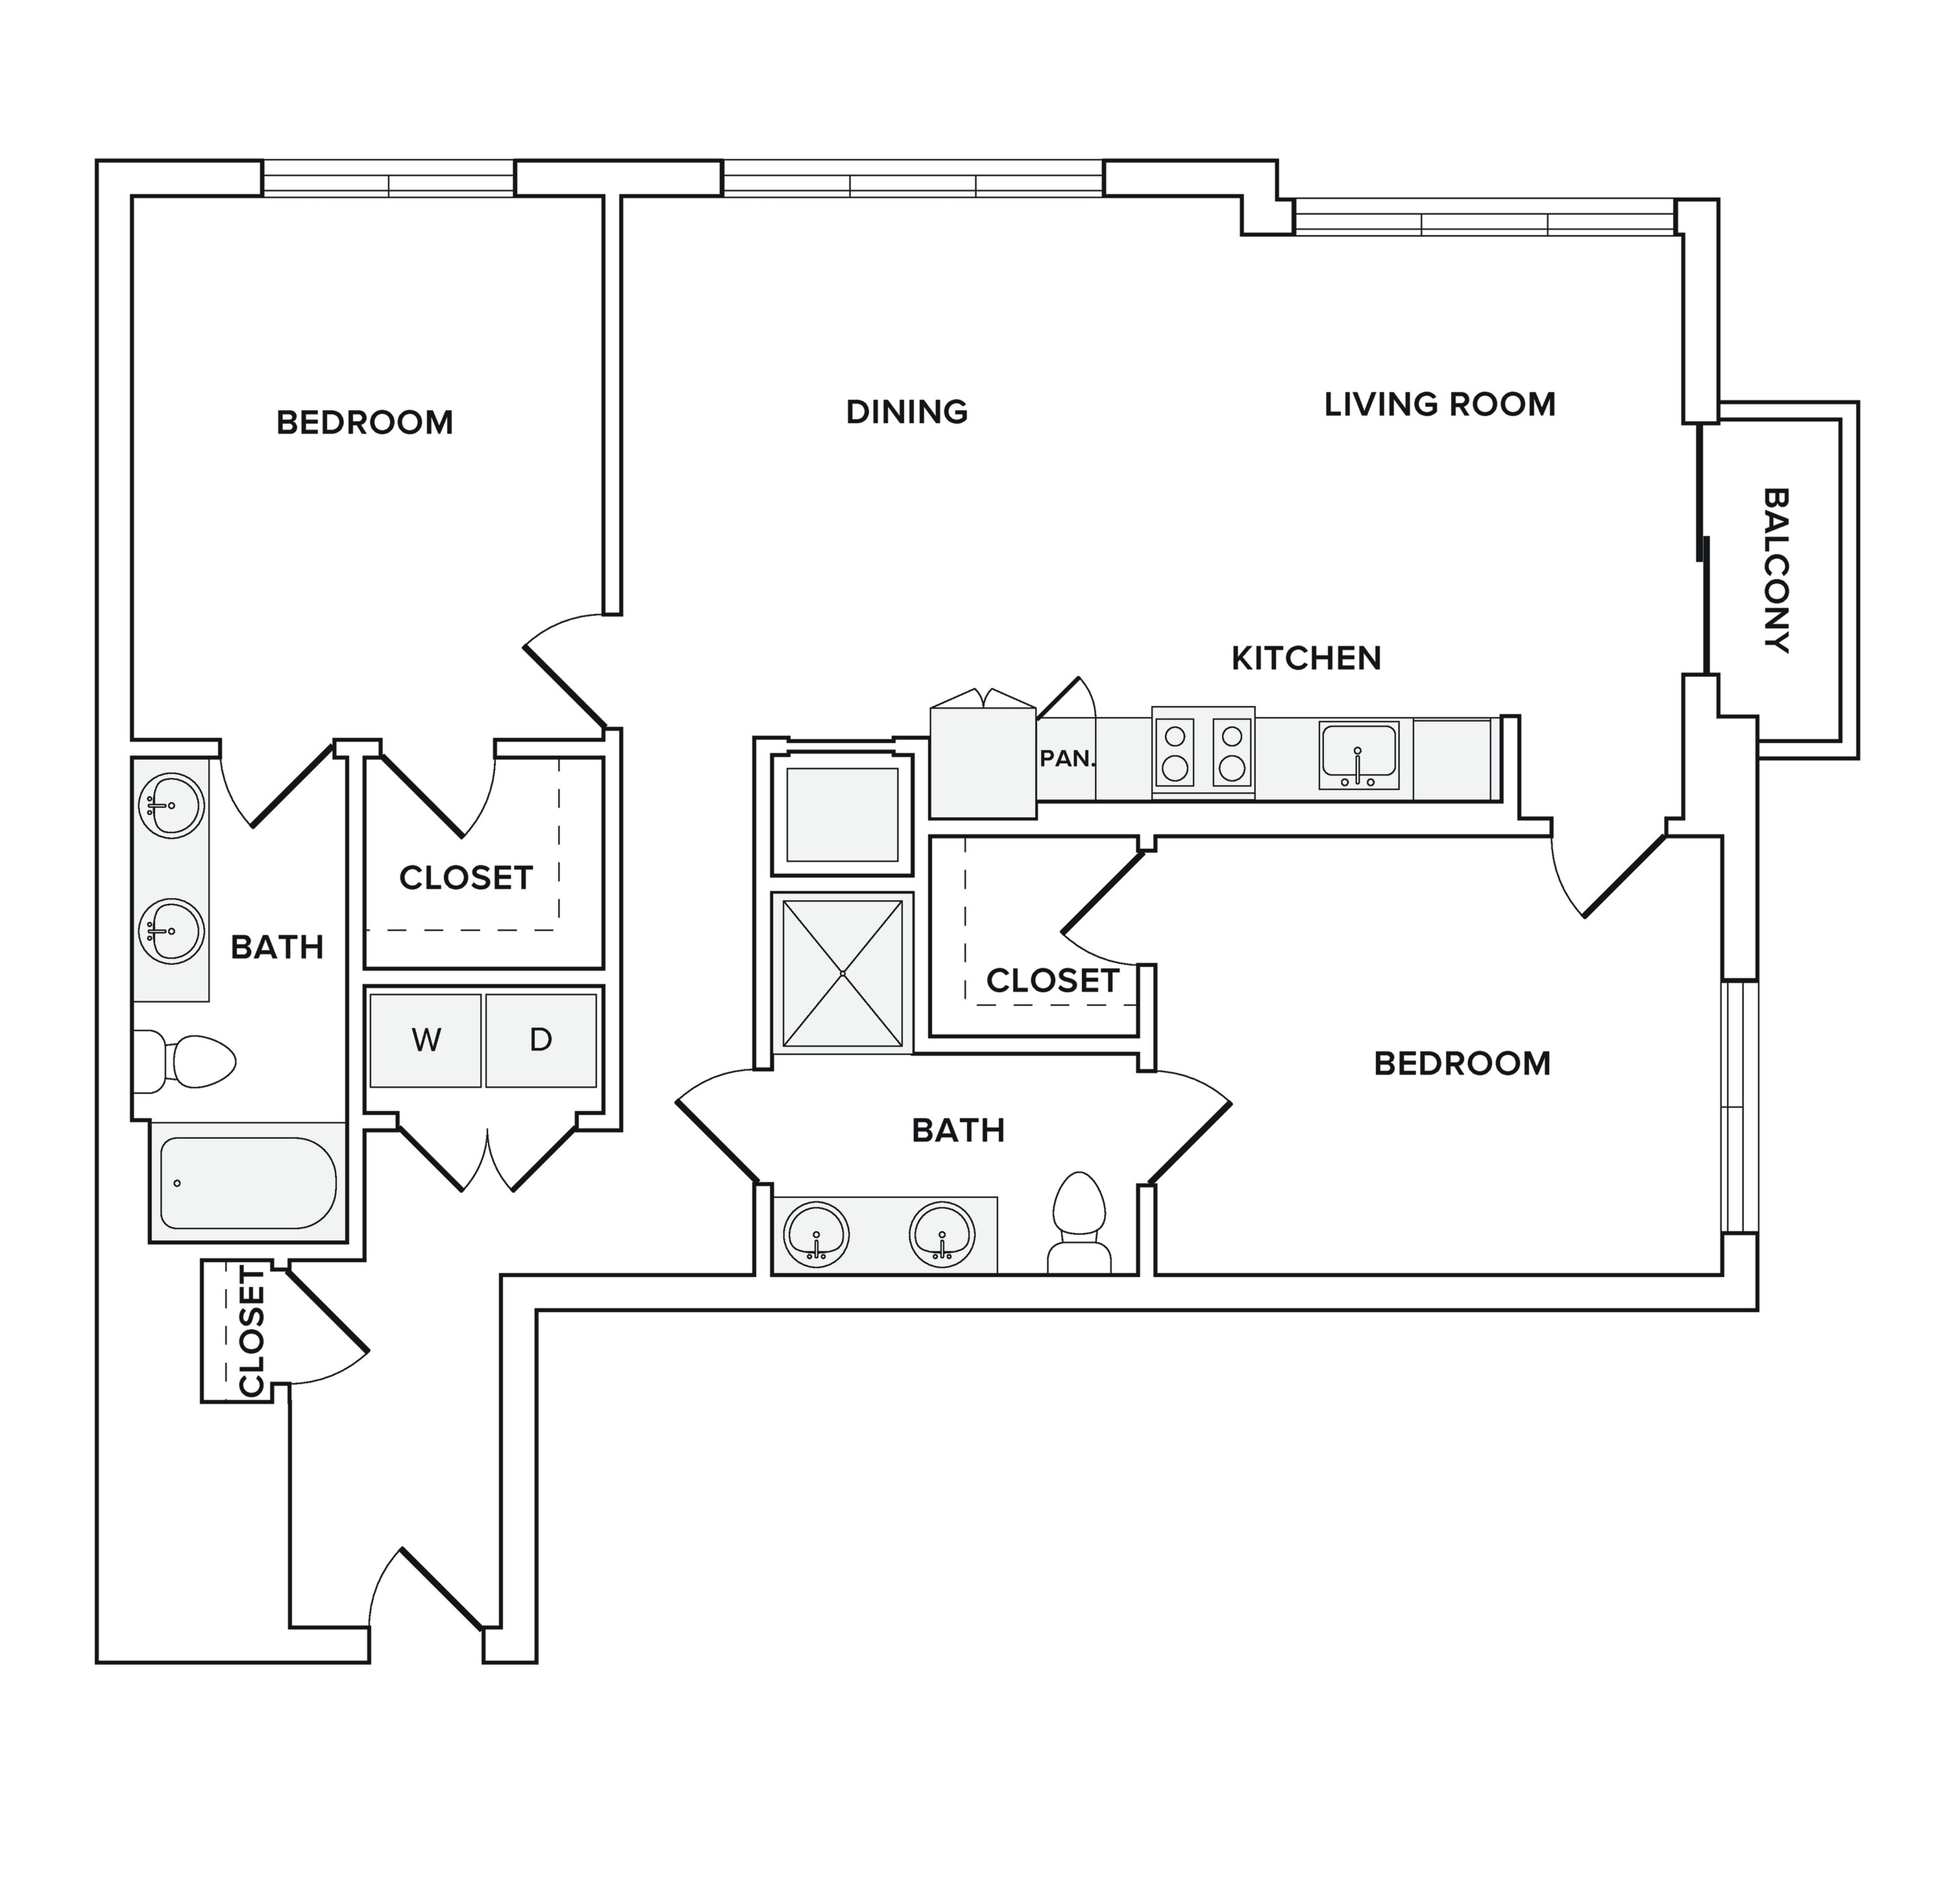 1180-1191 square foot two bedroom two bath apartment floorplan image